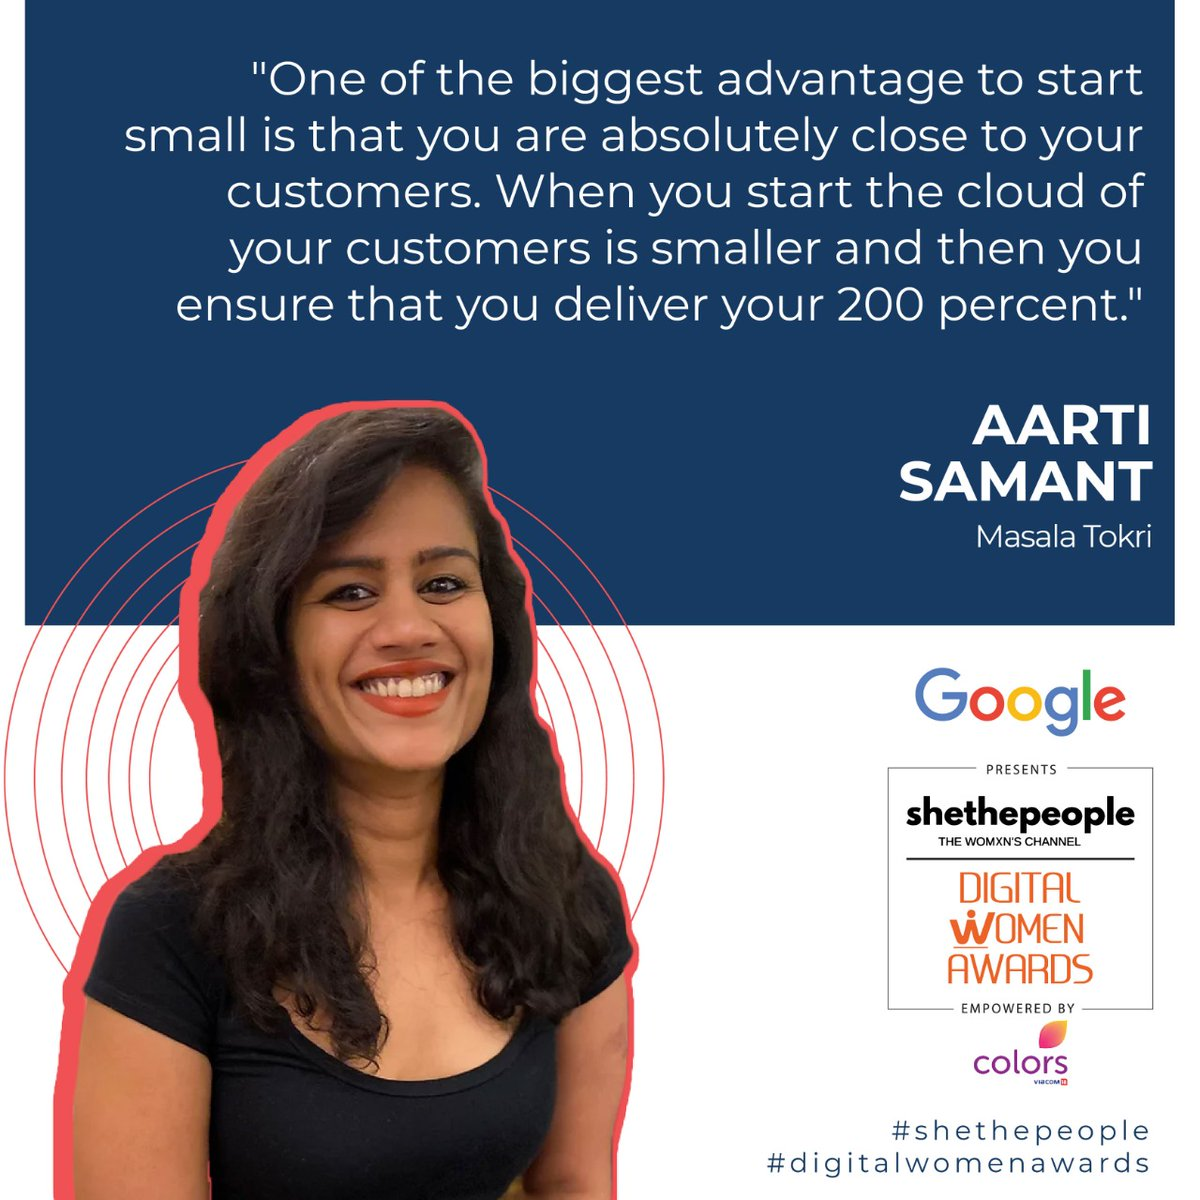 Aarti Samant at #DigitalWomenAwards talking about the benefits of starting small @poongsoong